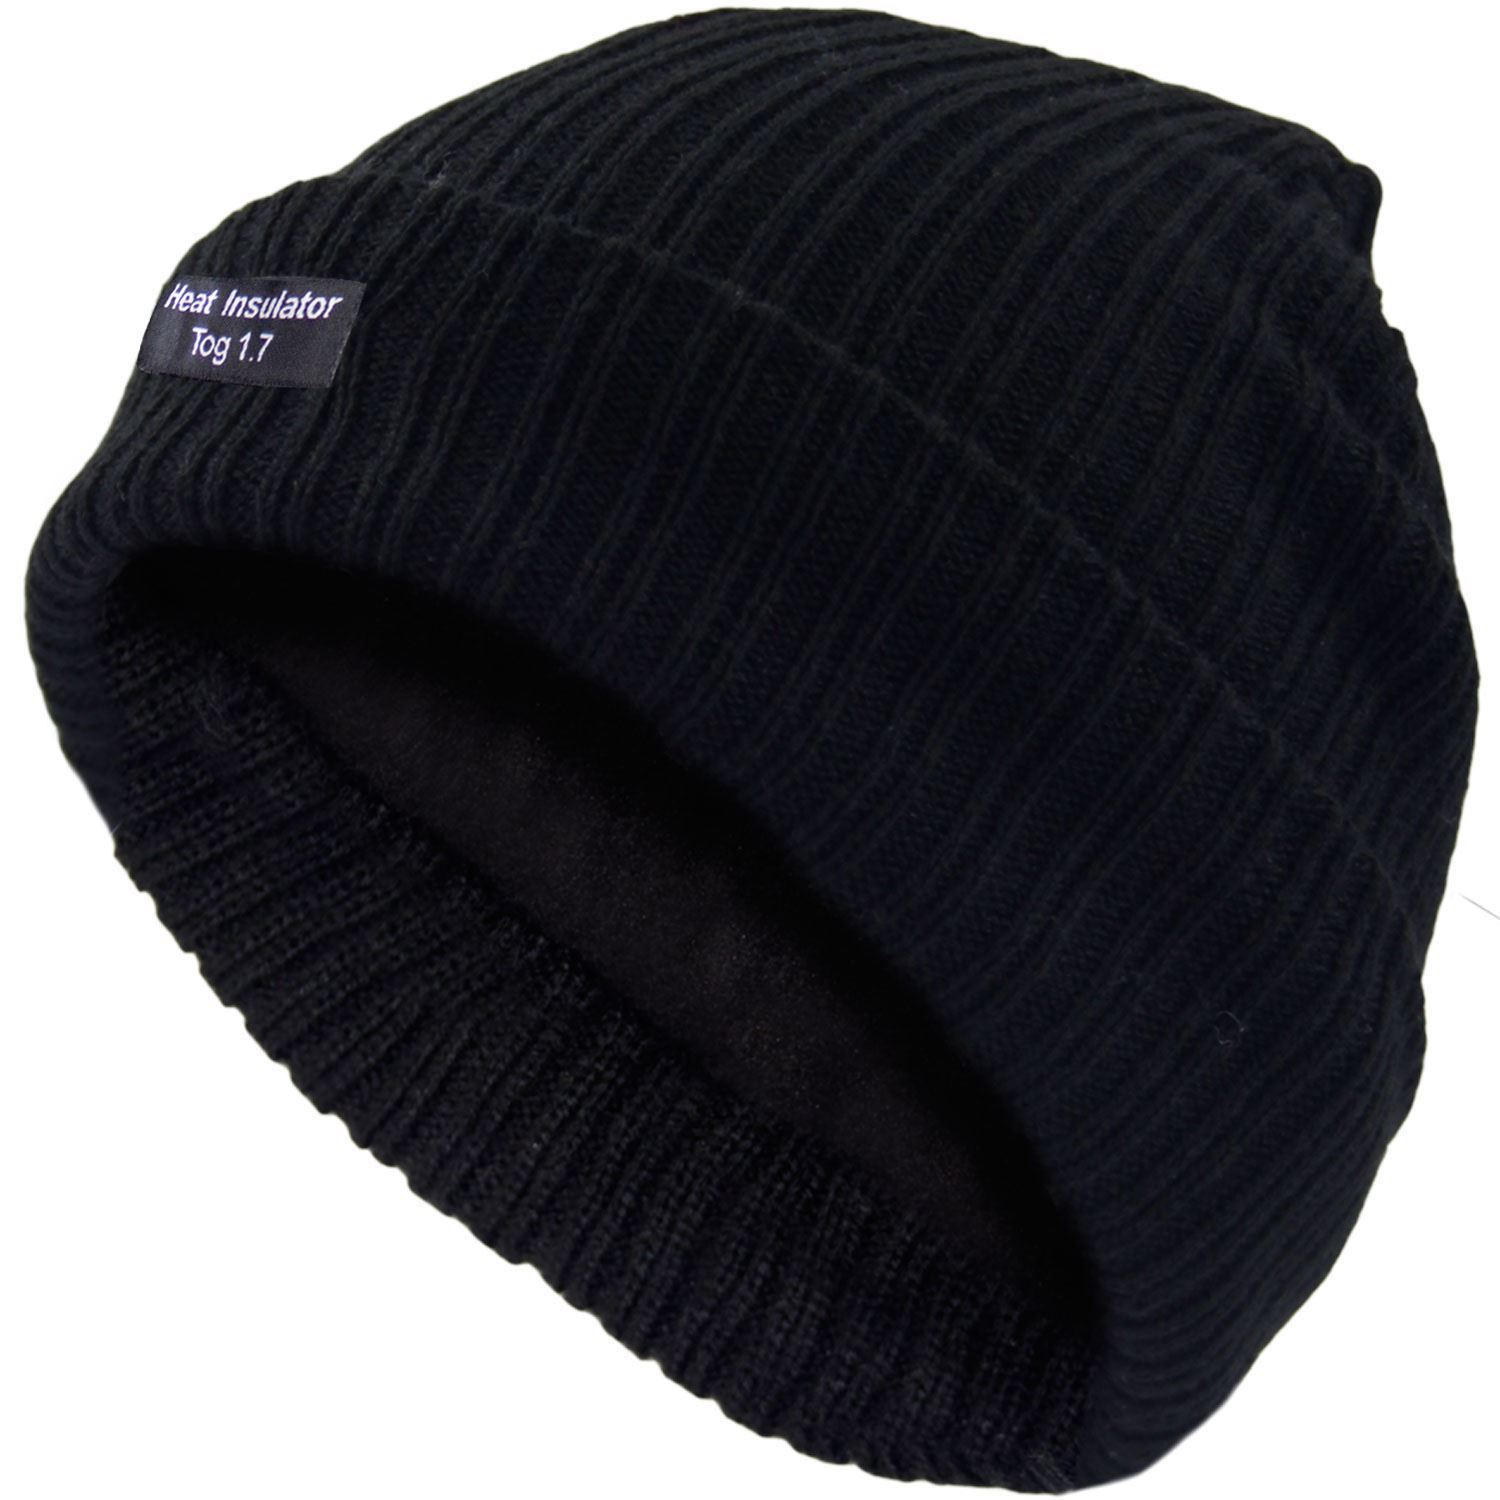 Thermal Beanie Hats for Mens Winter Warm Woolly Extra Thick Heat Insulator Hat